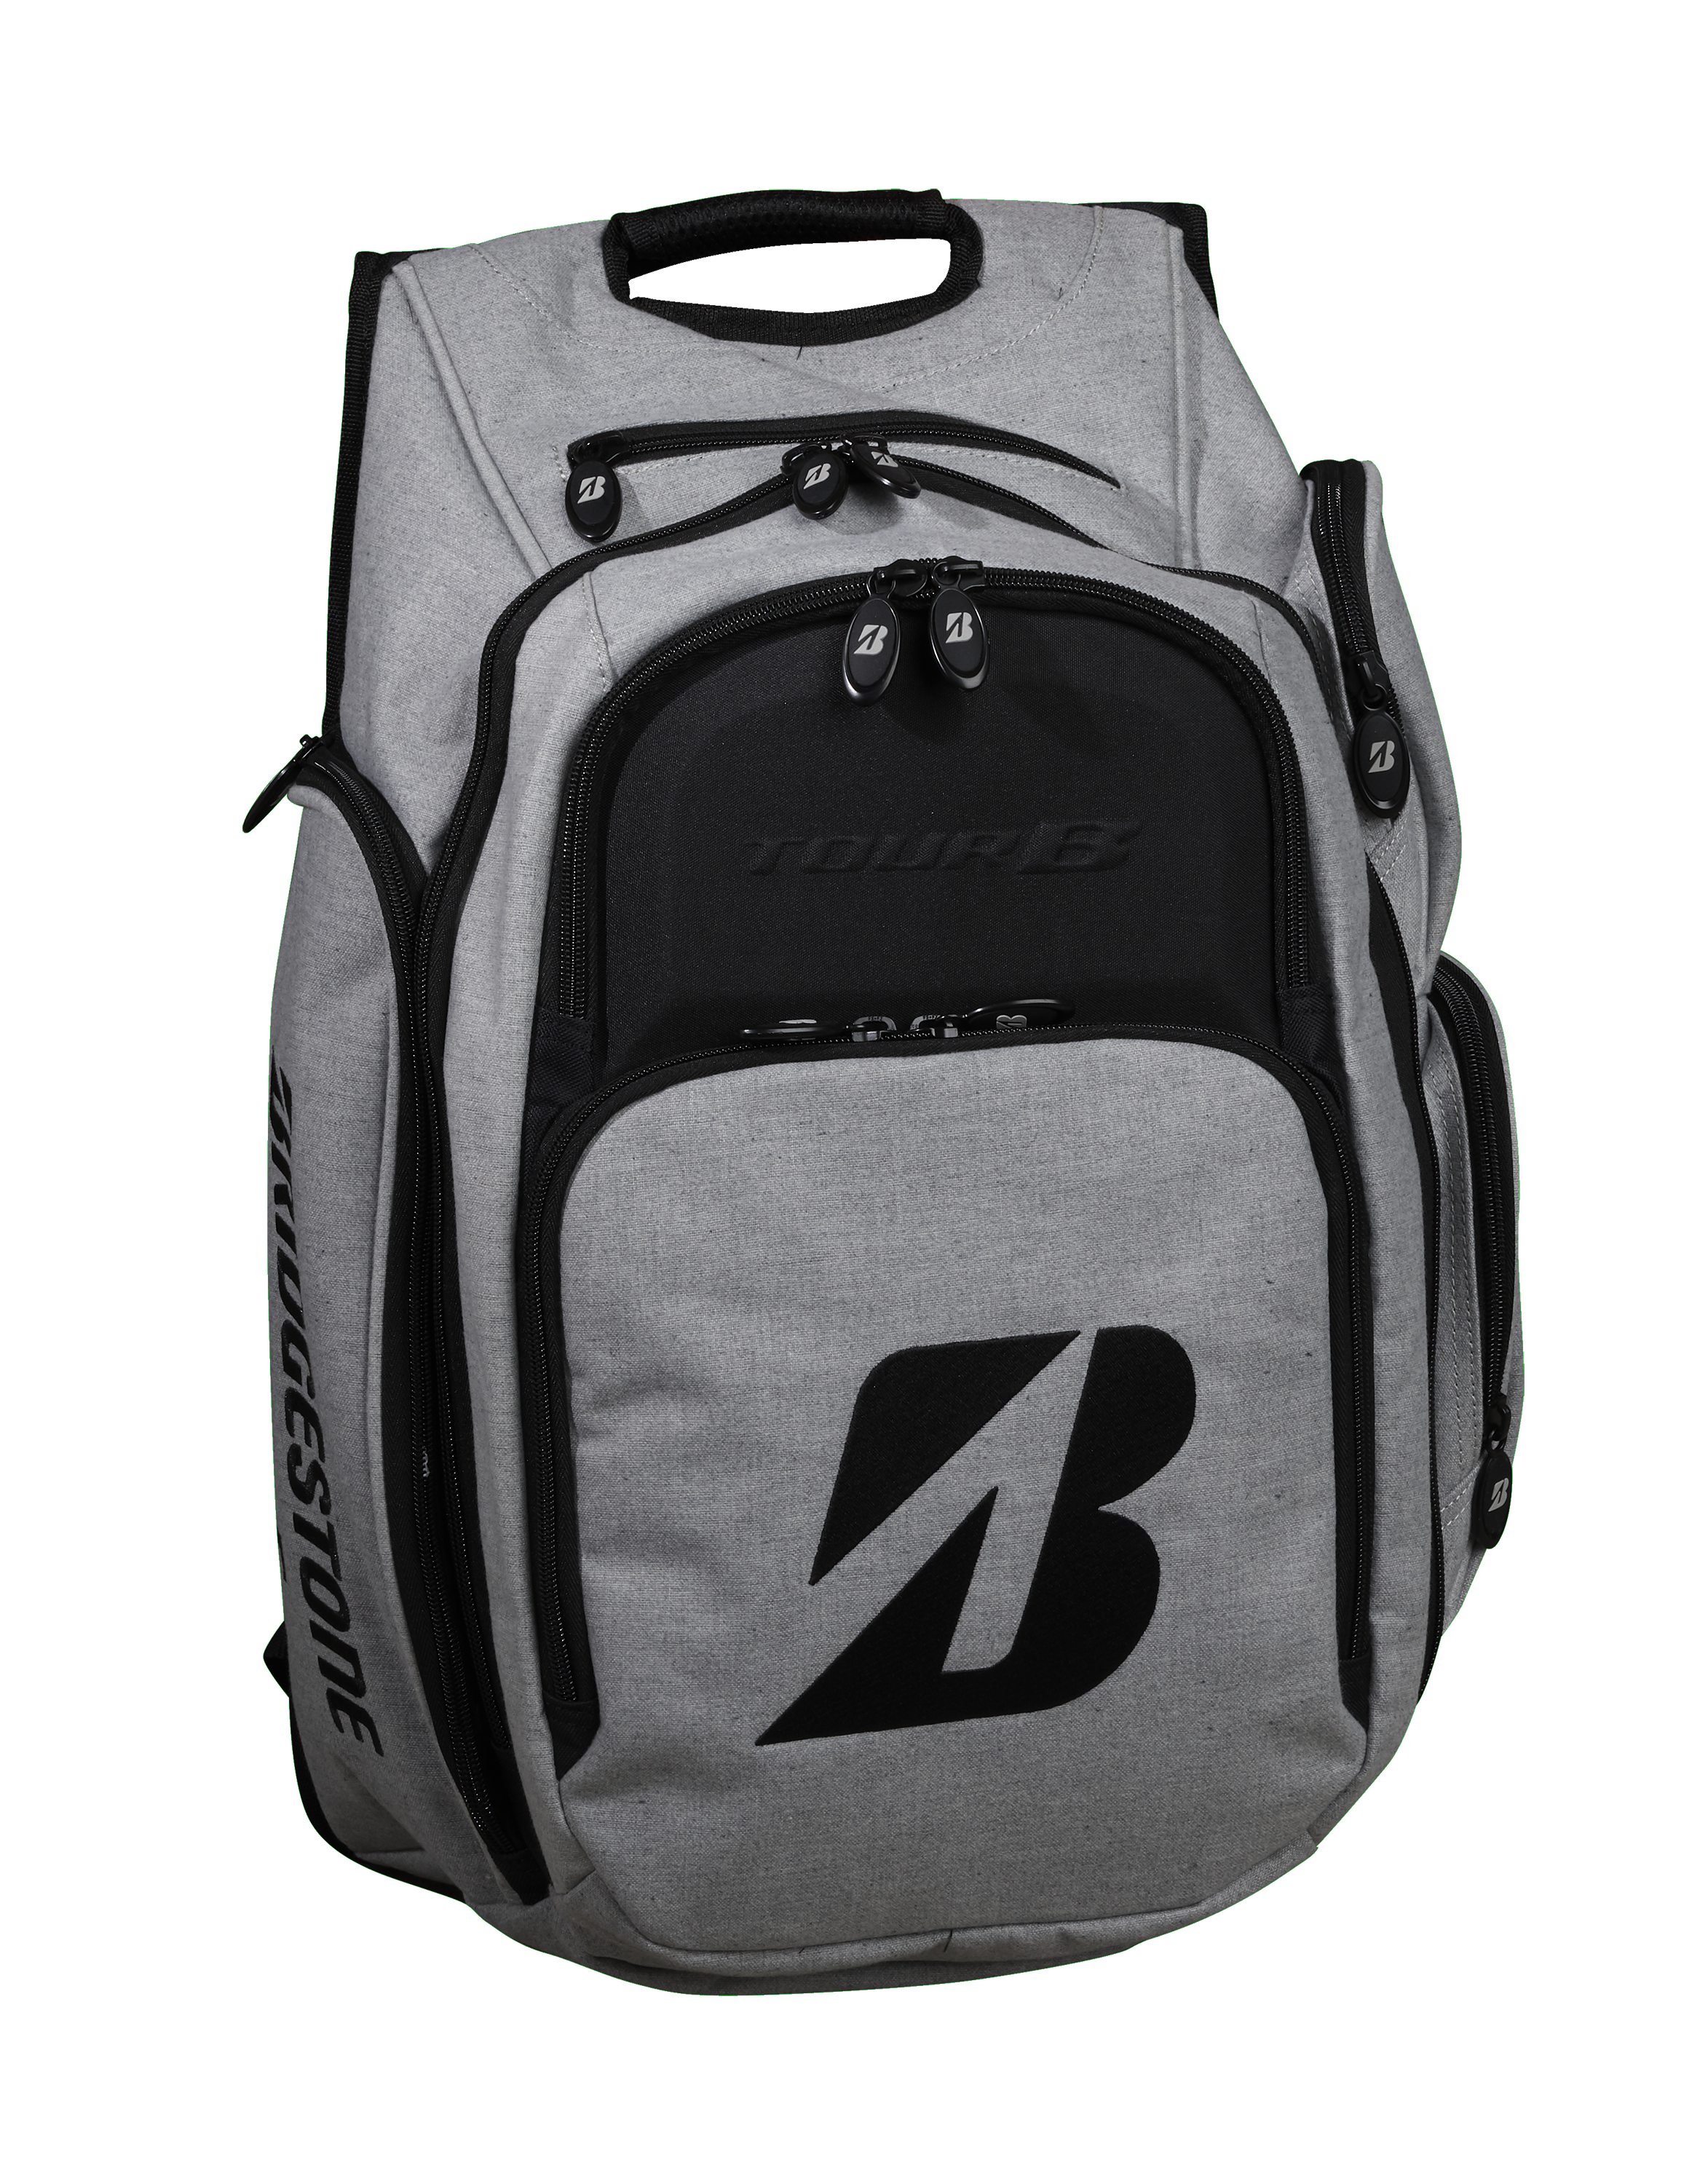 BSG_Backpack.png